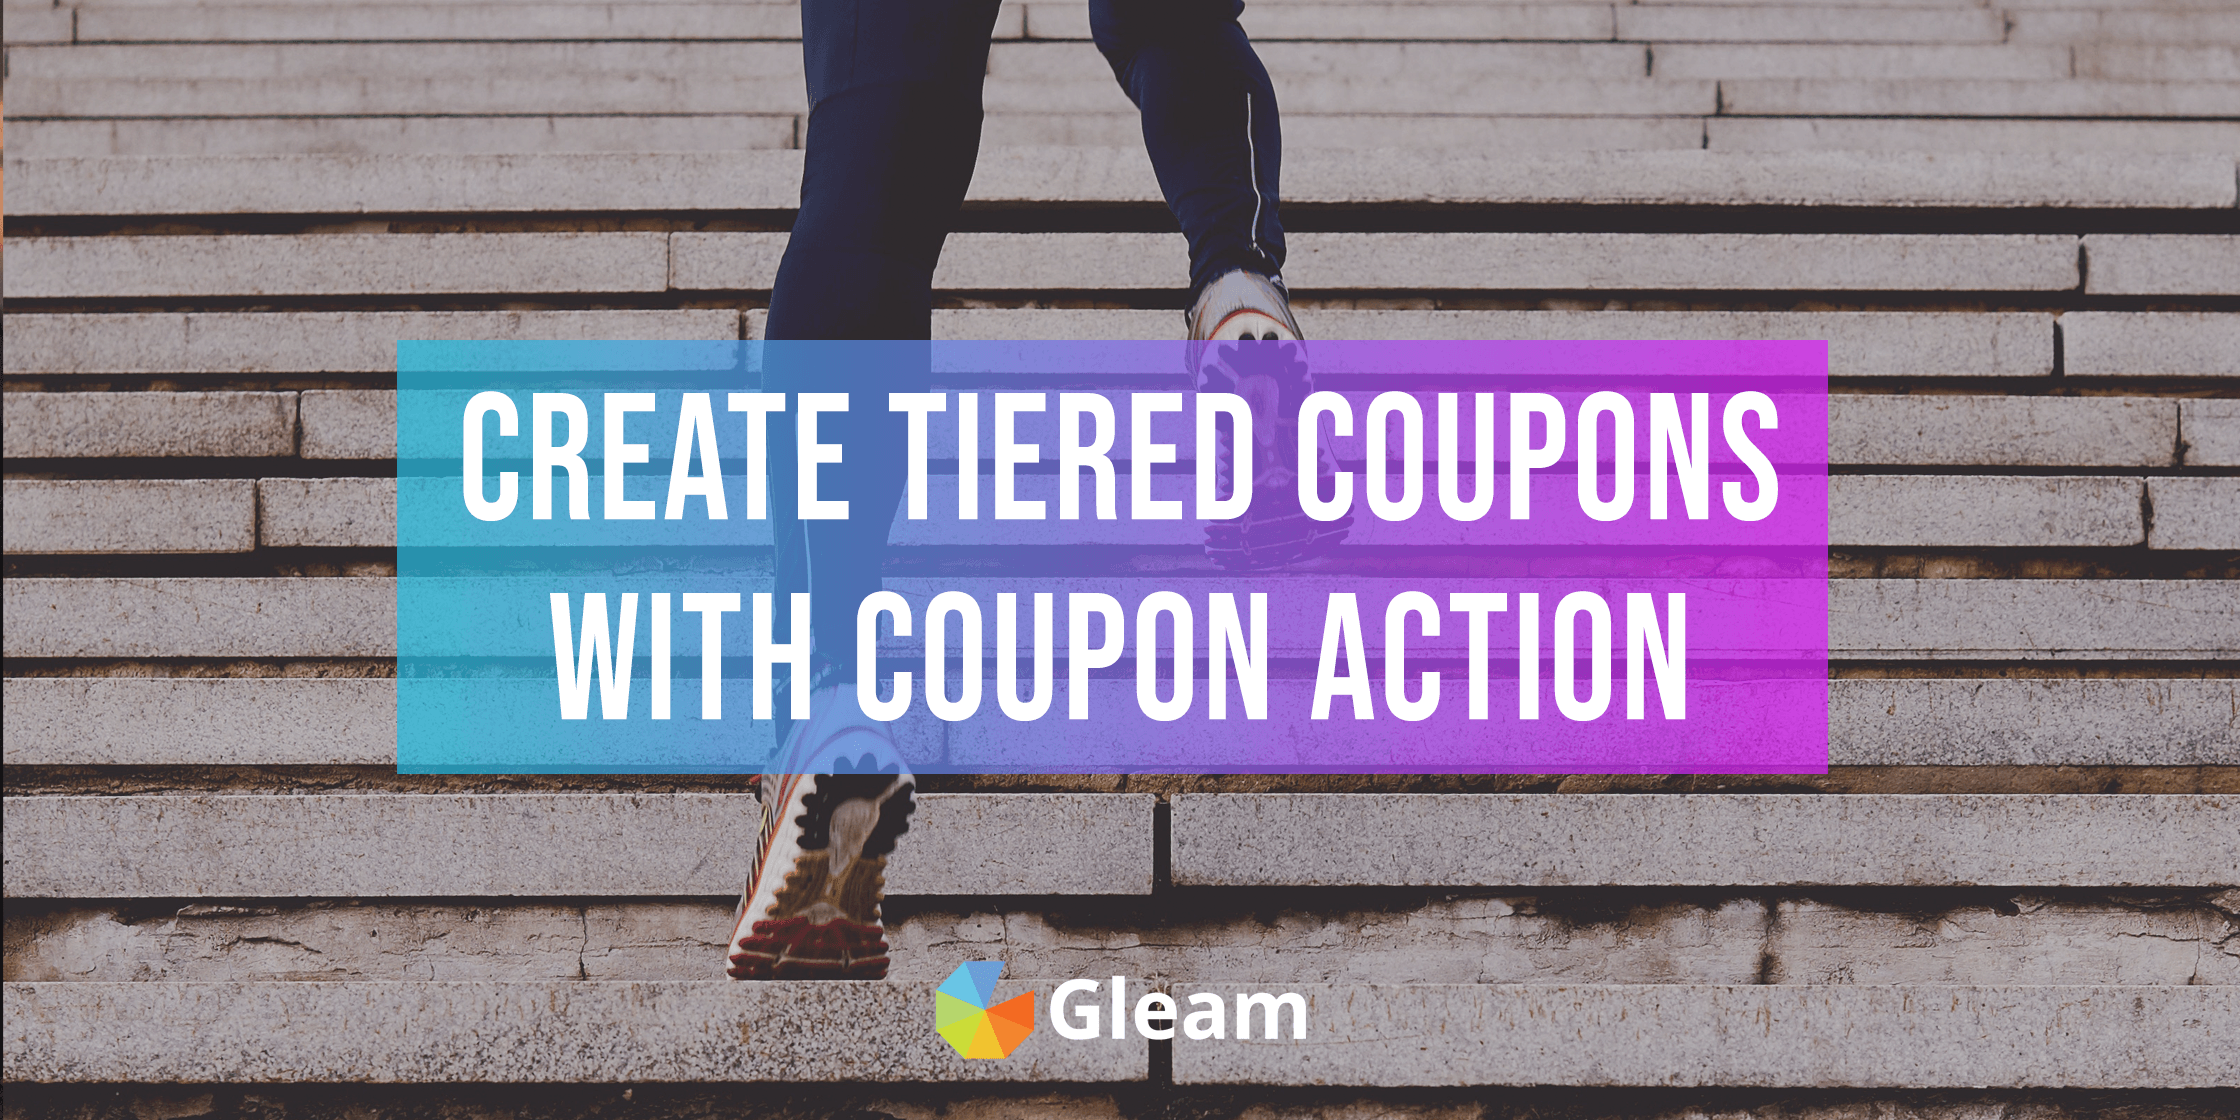 Drive More Actions With Tiered Coupons